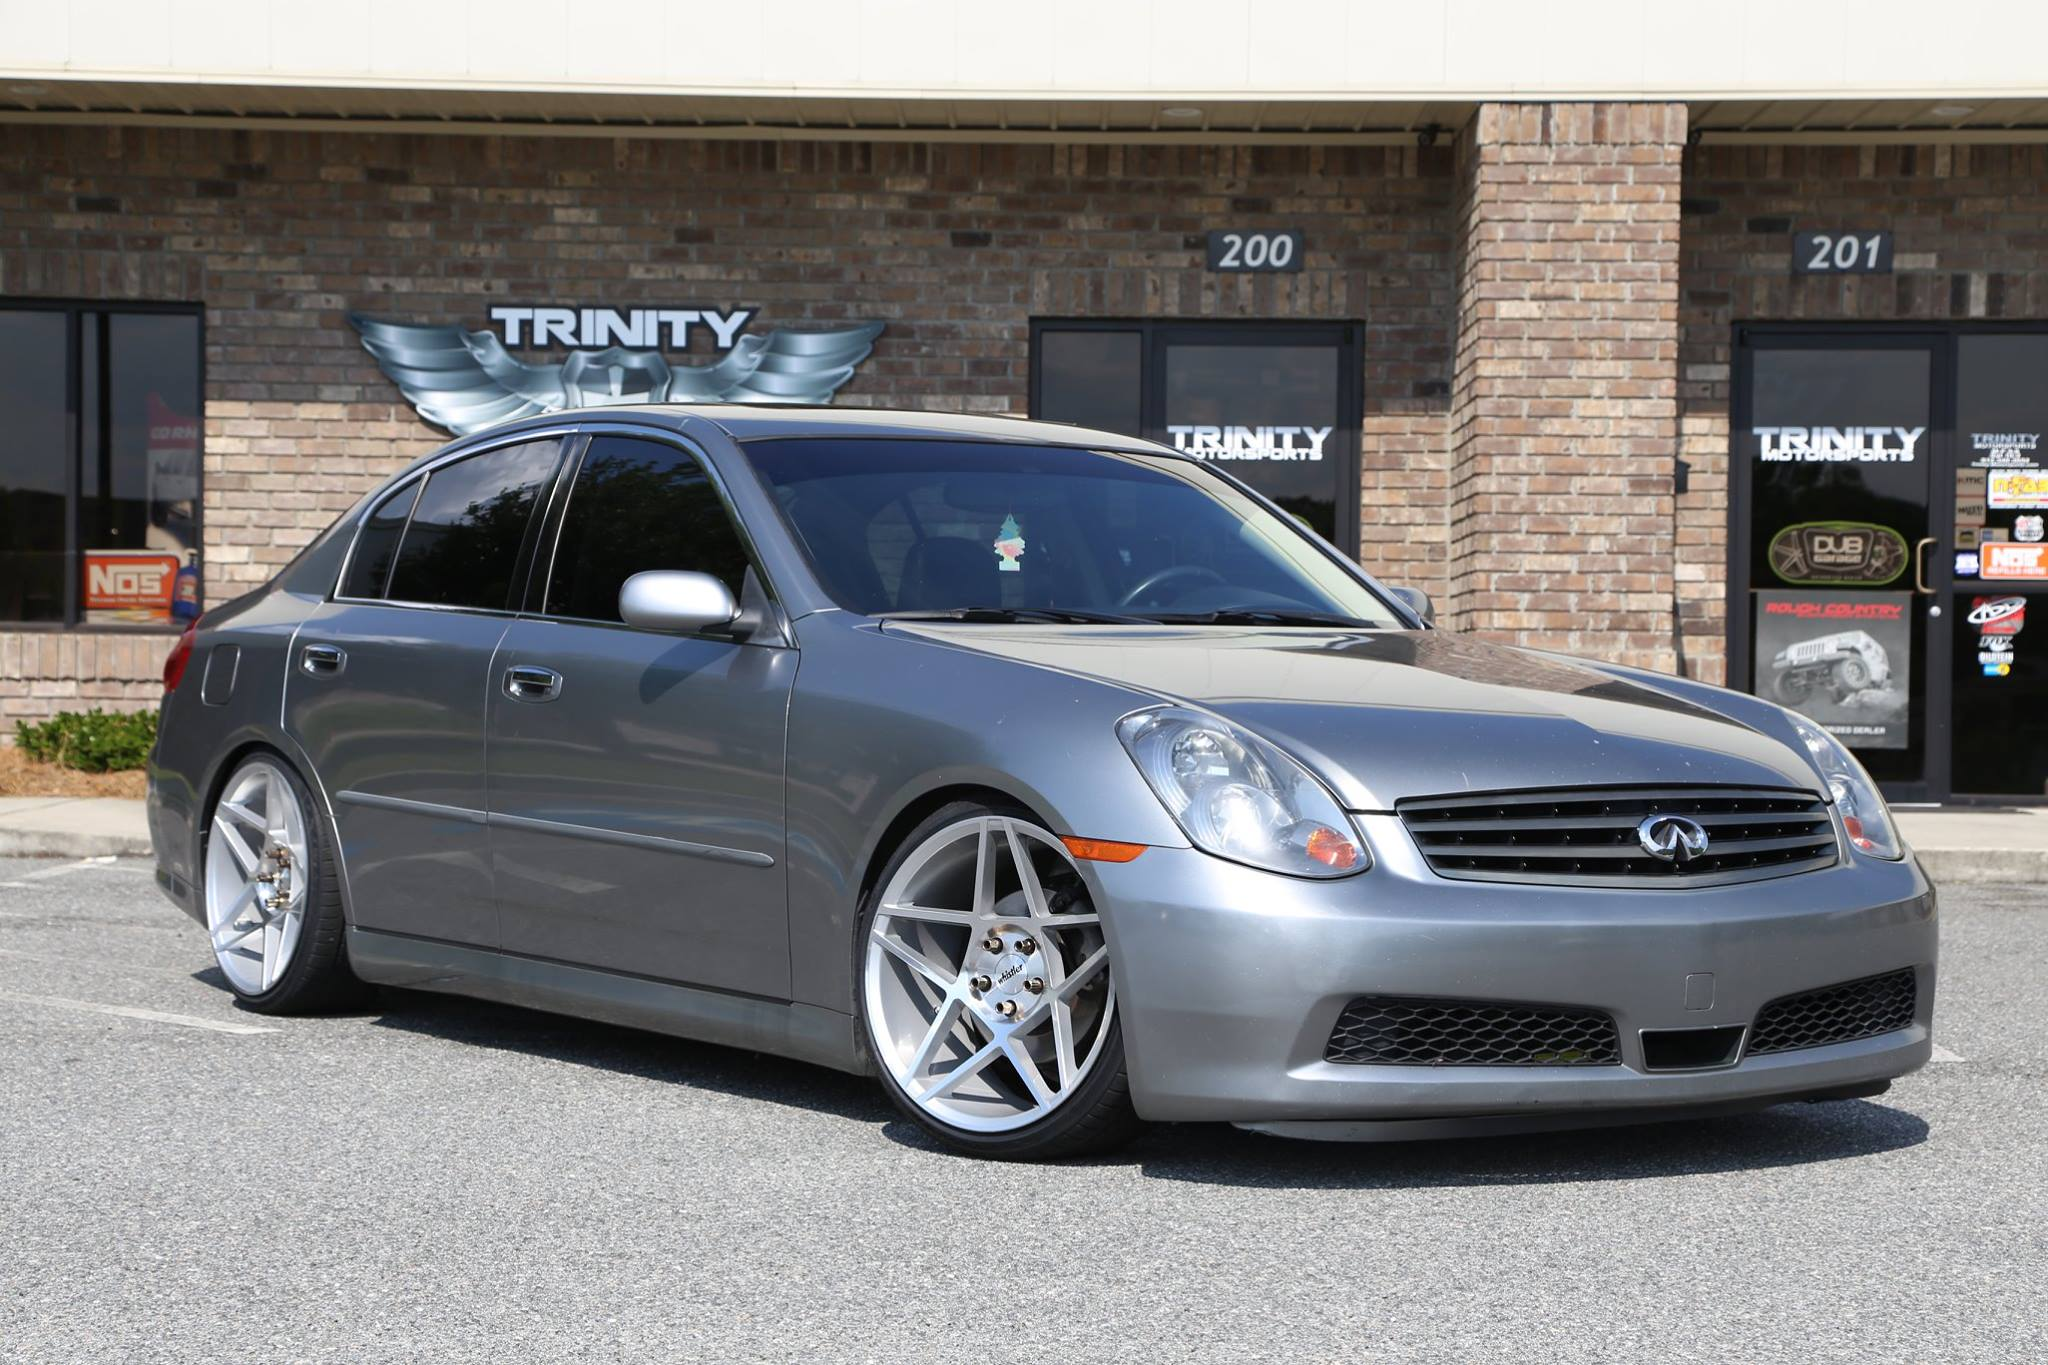 Custom 2007 Infiniti G35 Sedan >> G35 Related Keywords - G35 Long Tail Keywords KeywordsKing